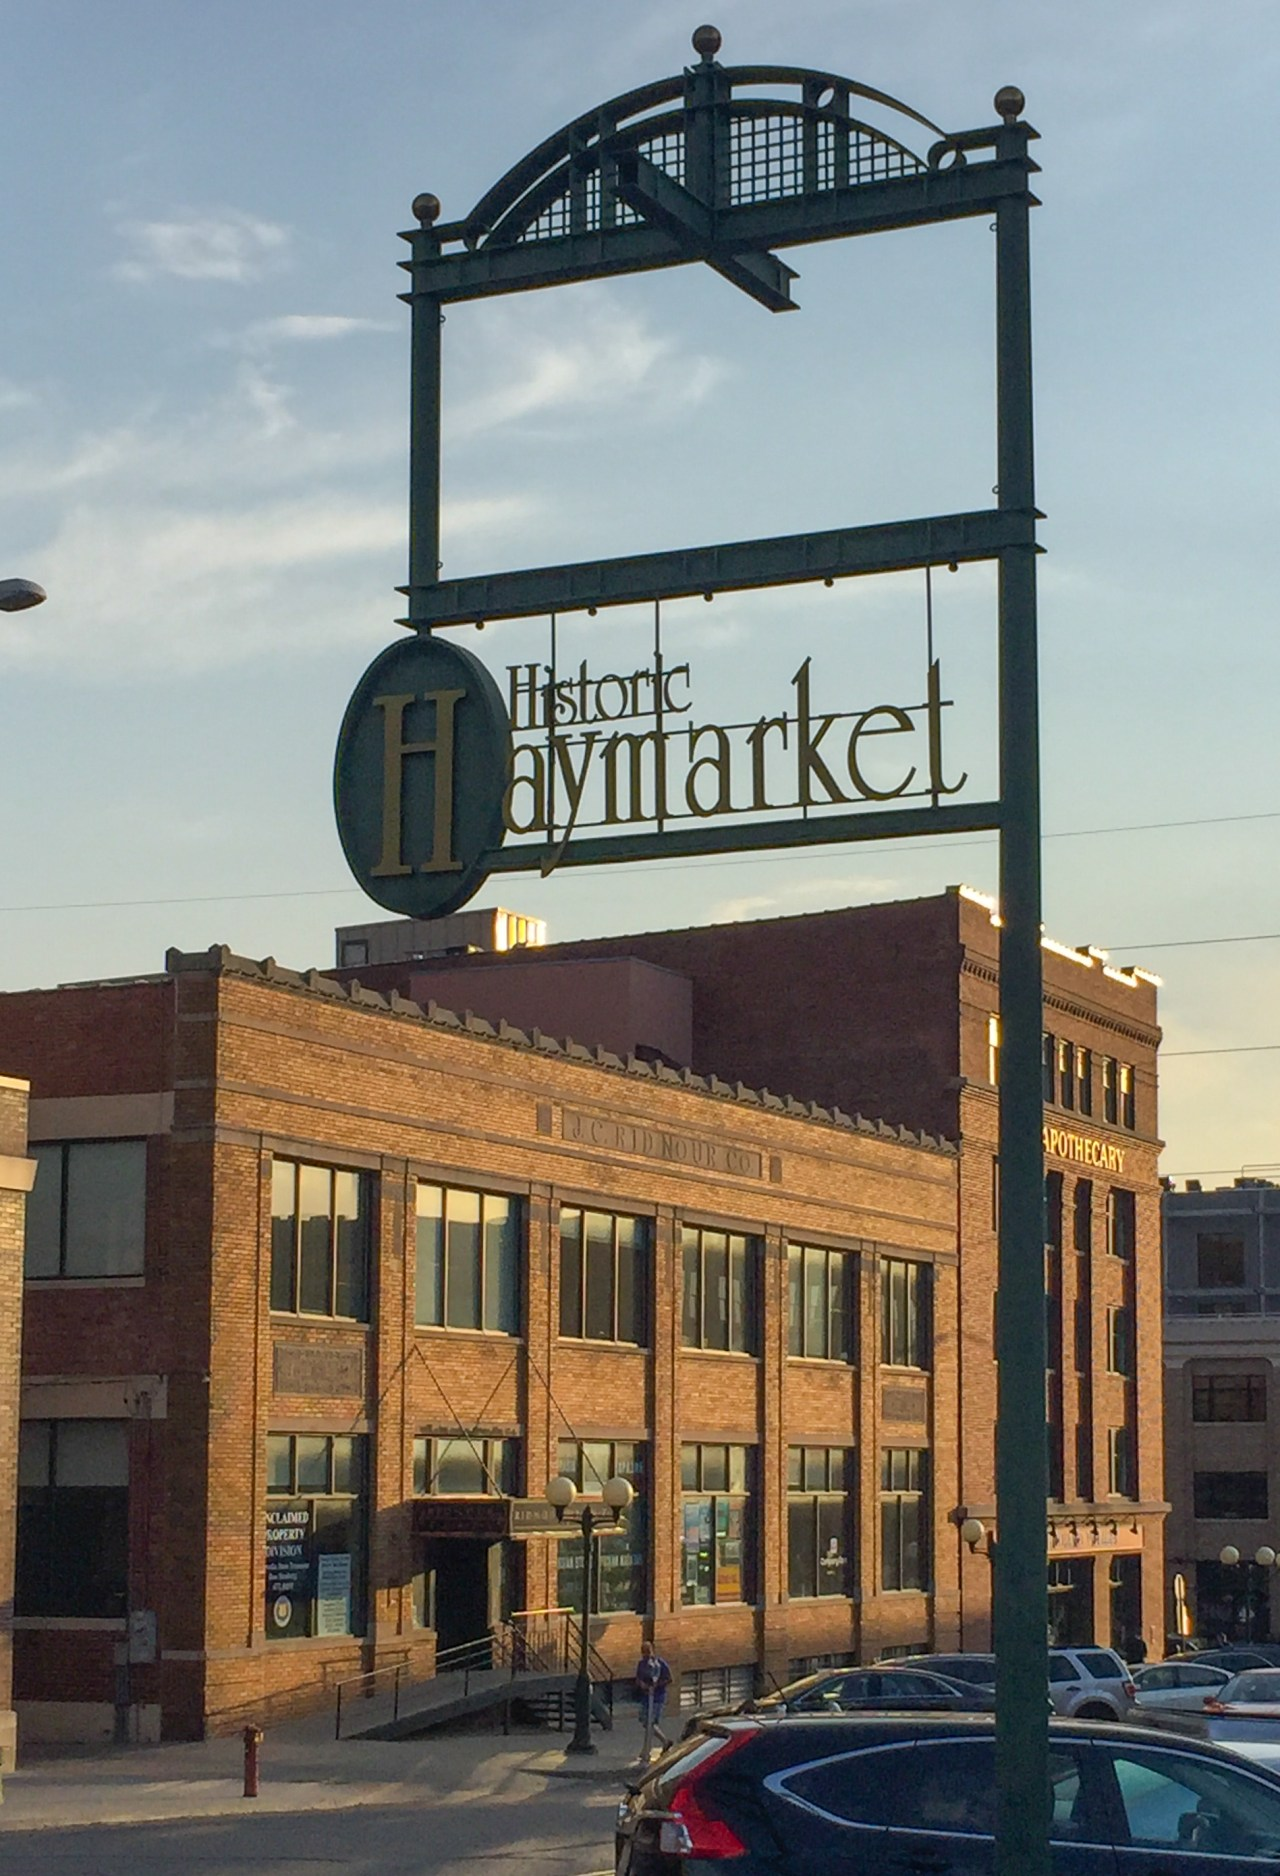 Haymarket area in Lincoln, Nebraska